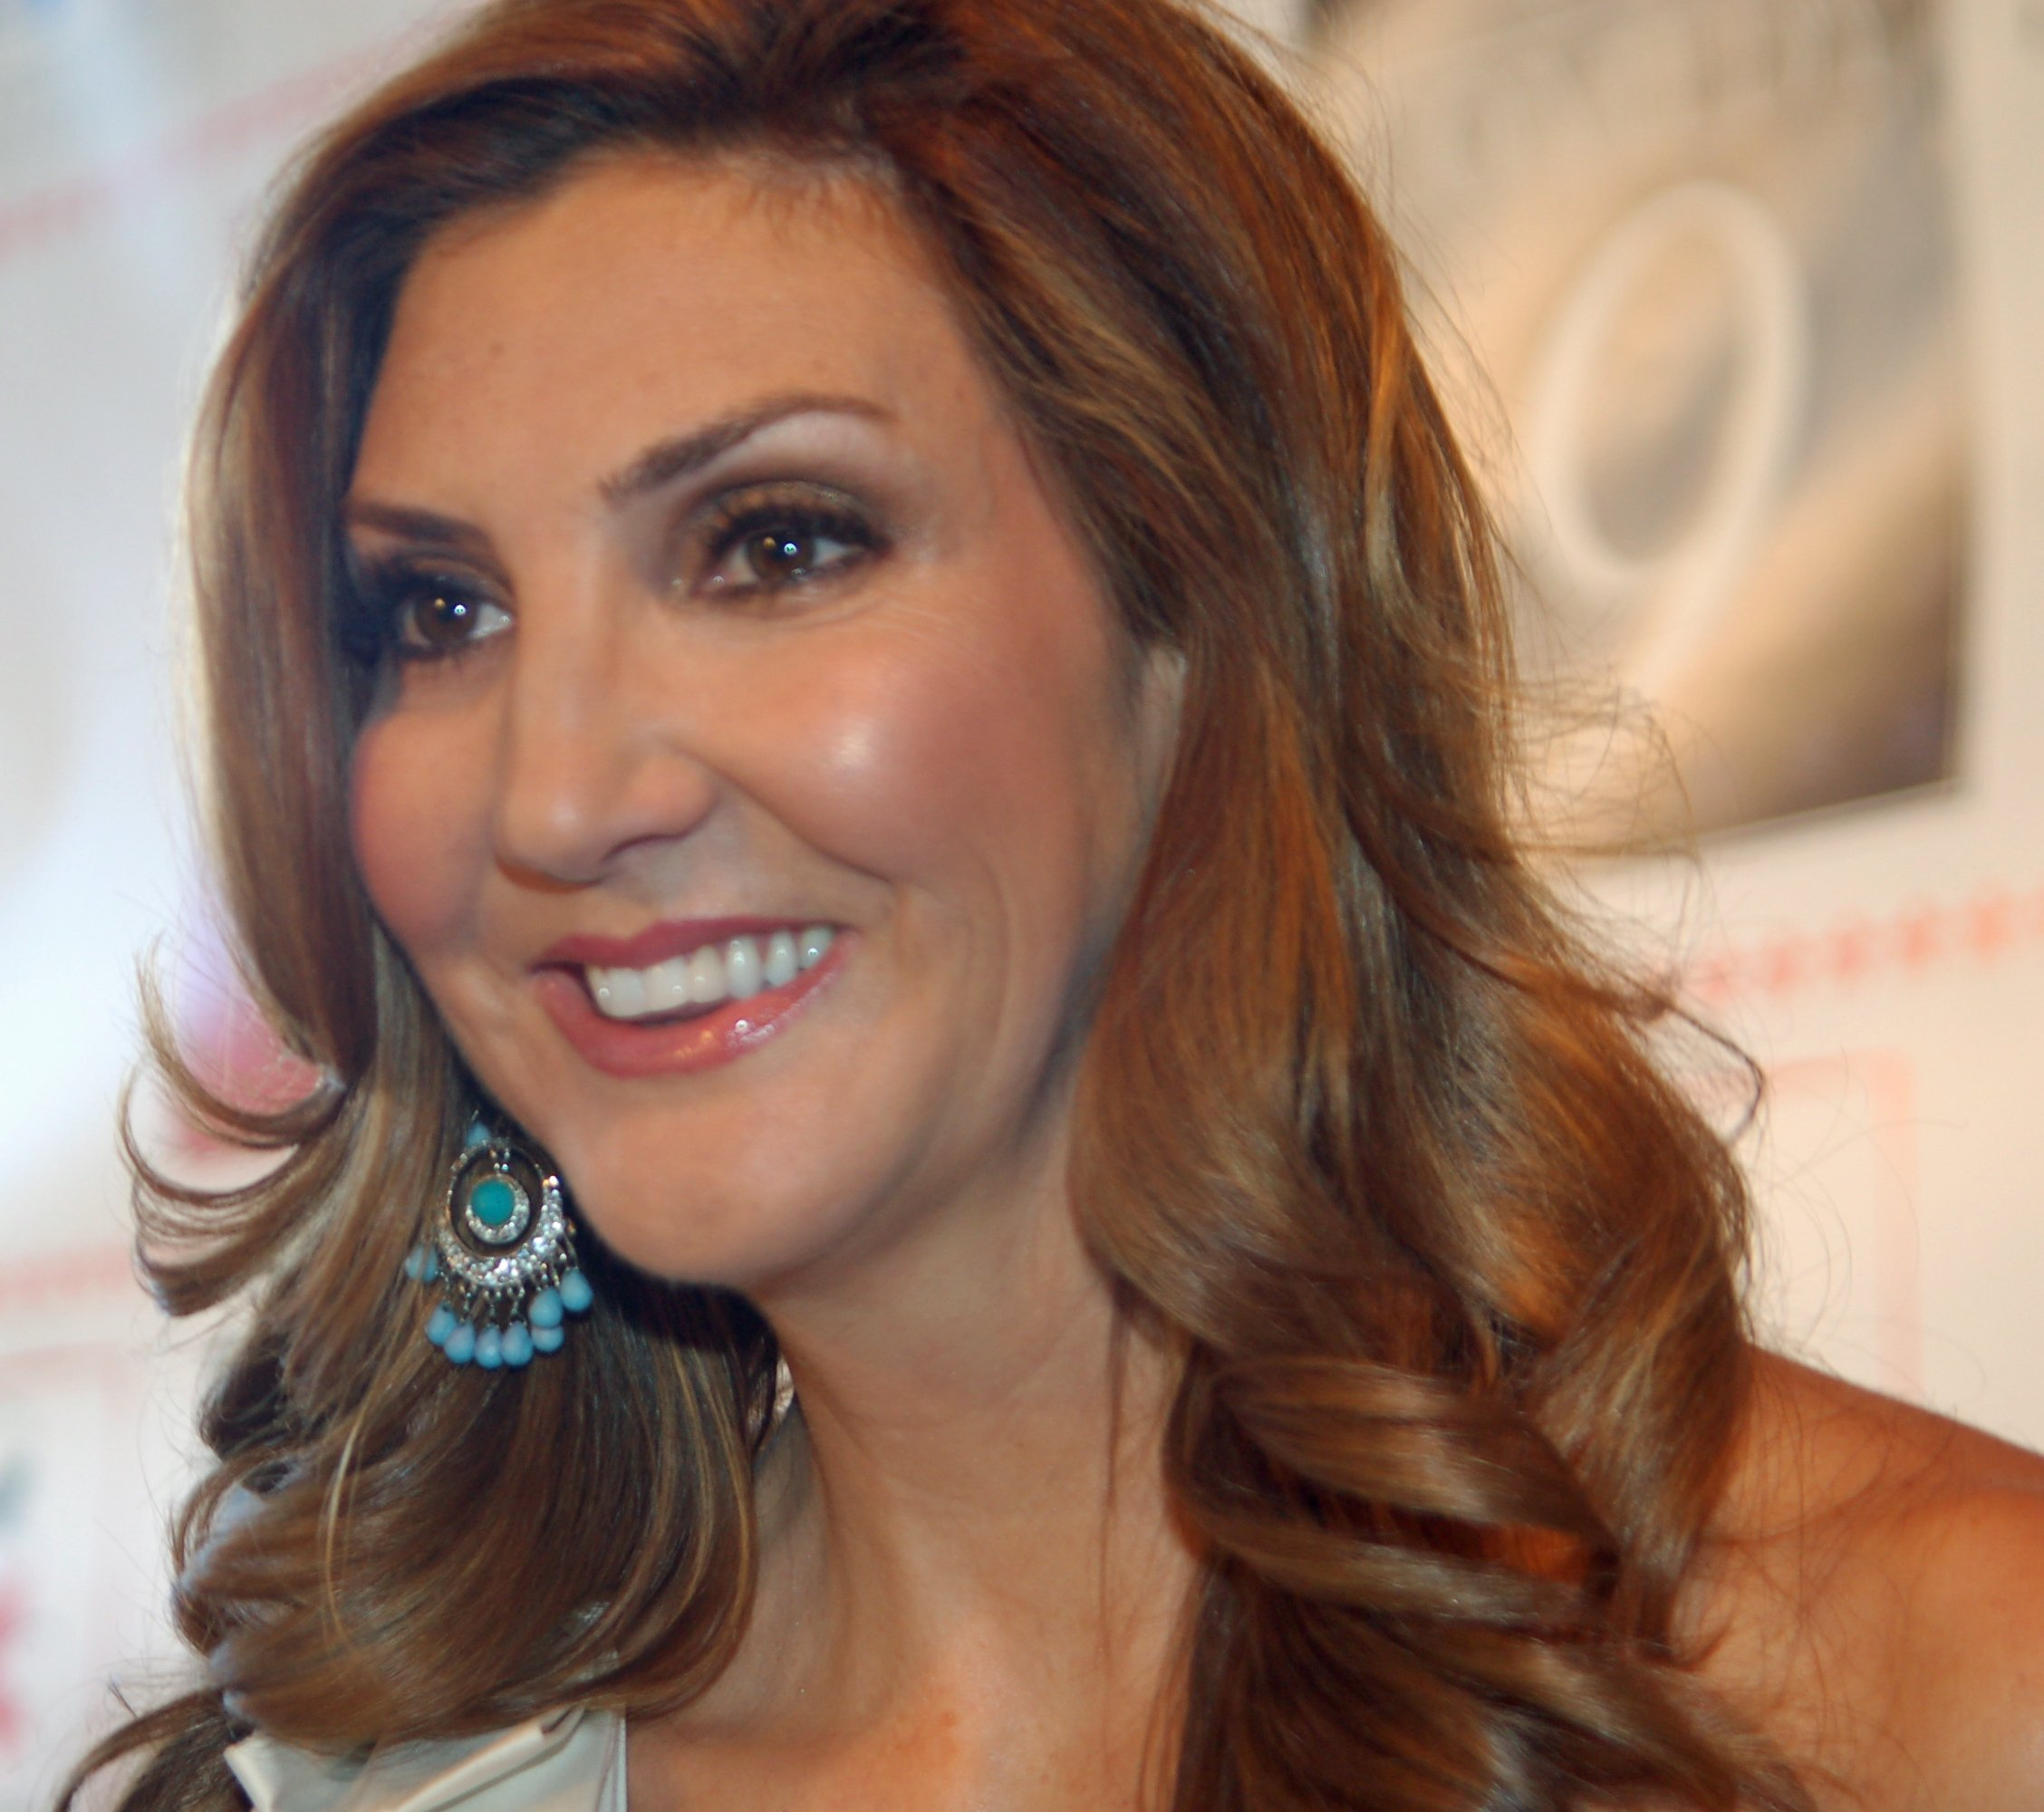 Heather McDonald at the Night of Comedy 9 benefit to support the Children Affected by AIDS Foundation (CAAF) in Beverly Hills, California | Photo: Angela George, CC BY-SA 3.0, Wikimedia Commons